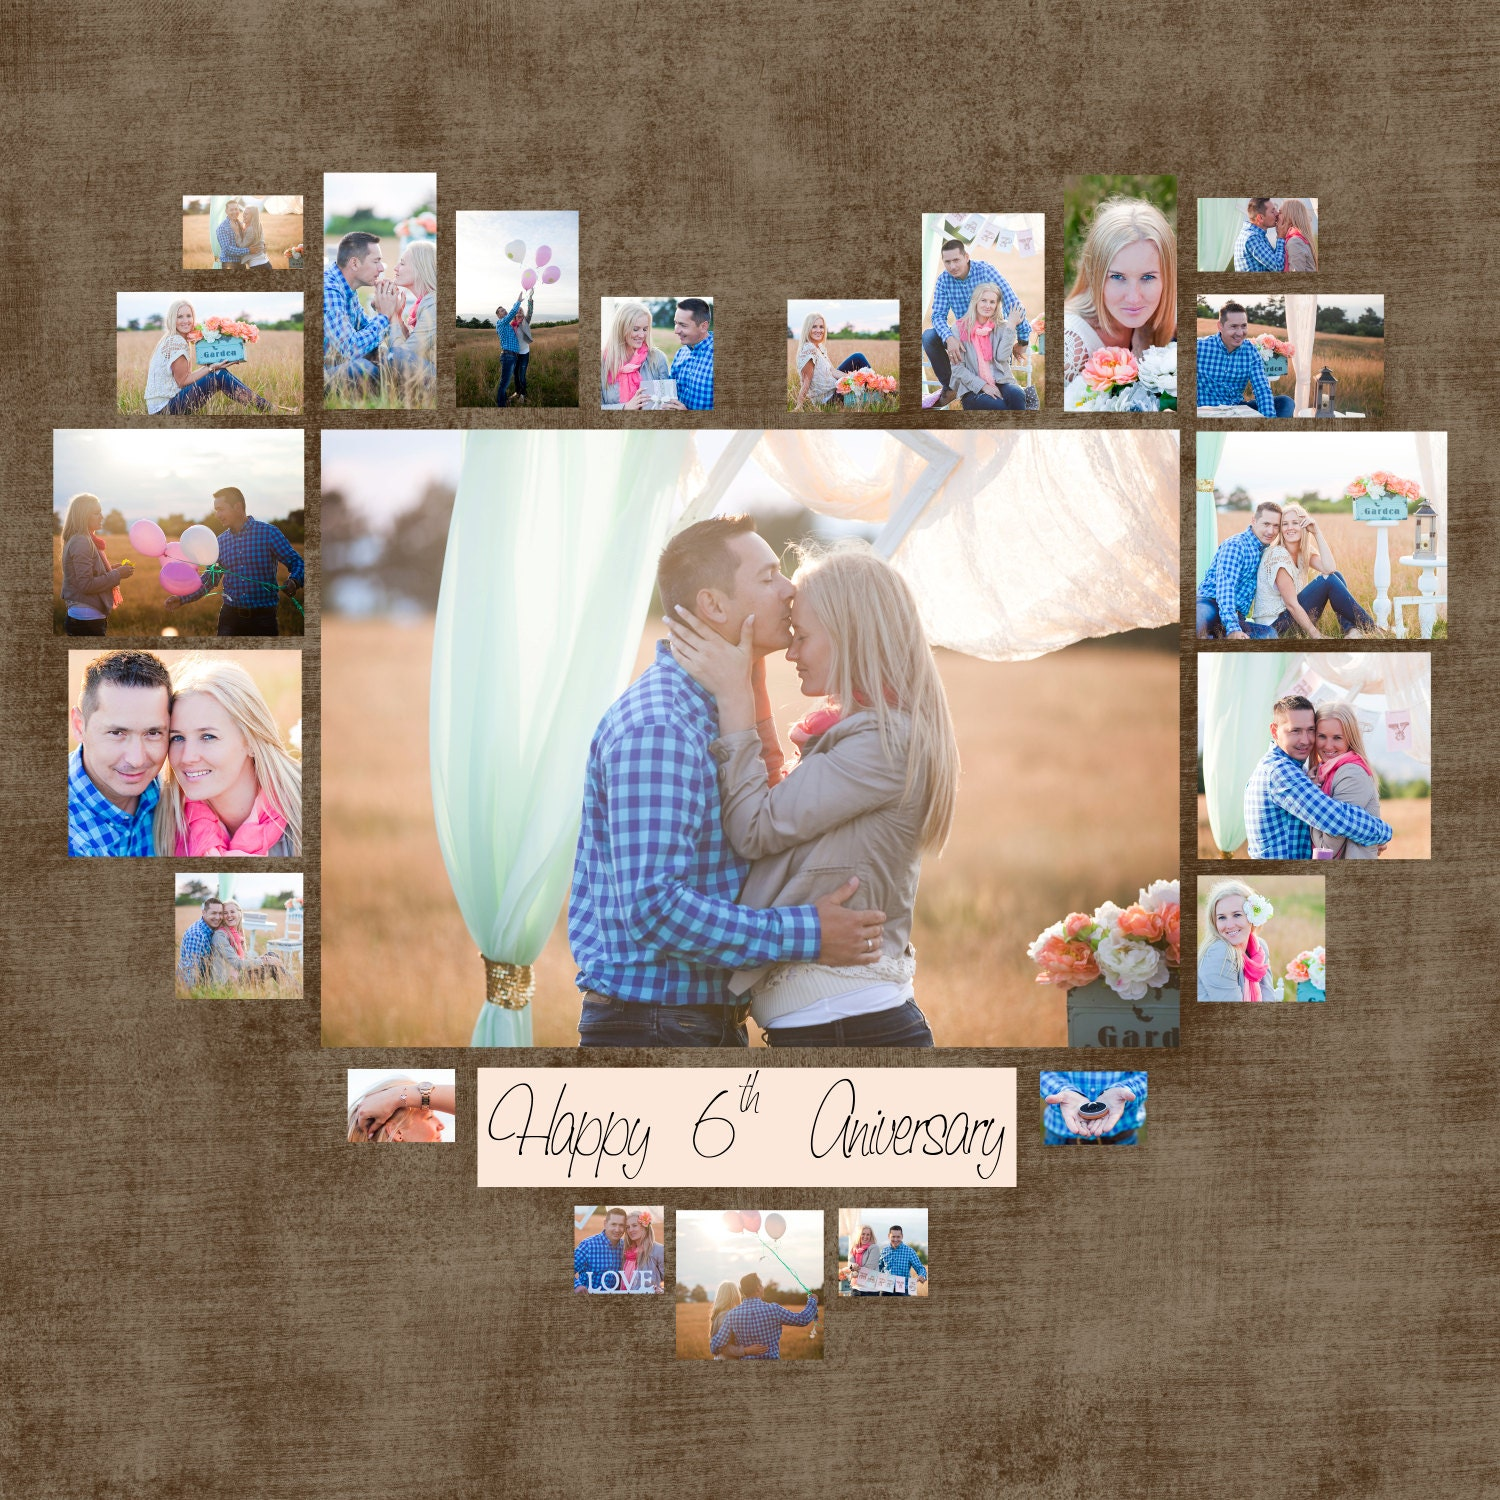 Heart Collage Template - Bing images